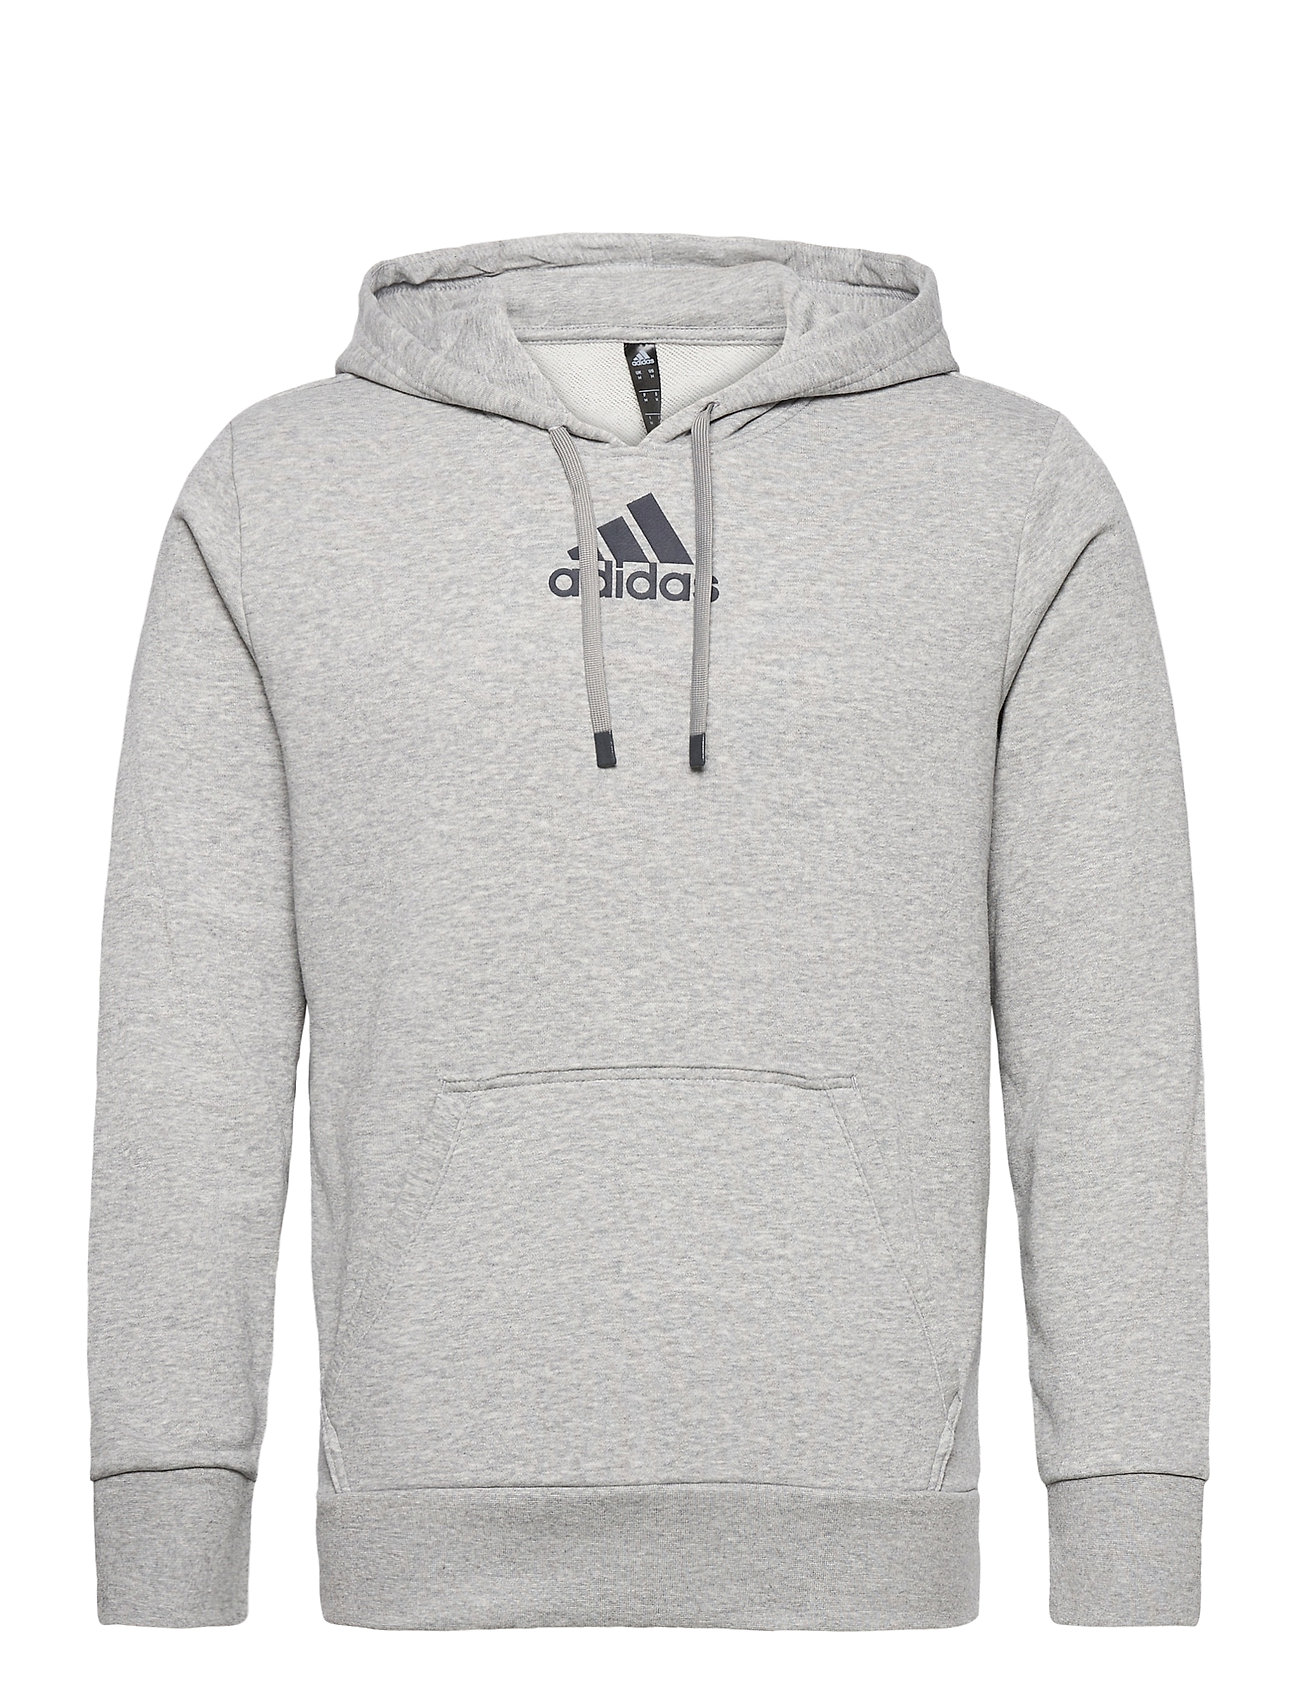 Image of Tennis Category Graphic Hoodie Hoodie Trøje Grå Adidas Performance (3454497177)